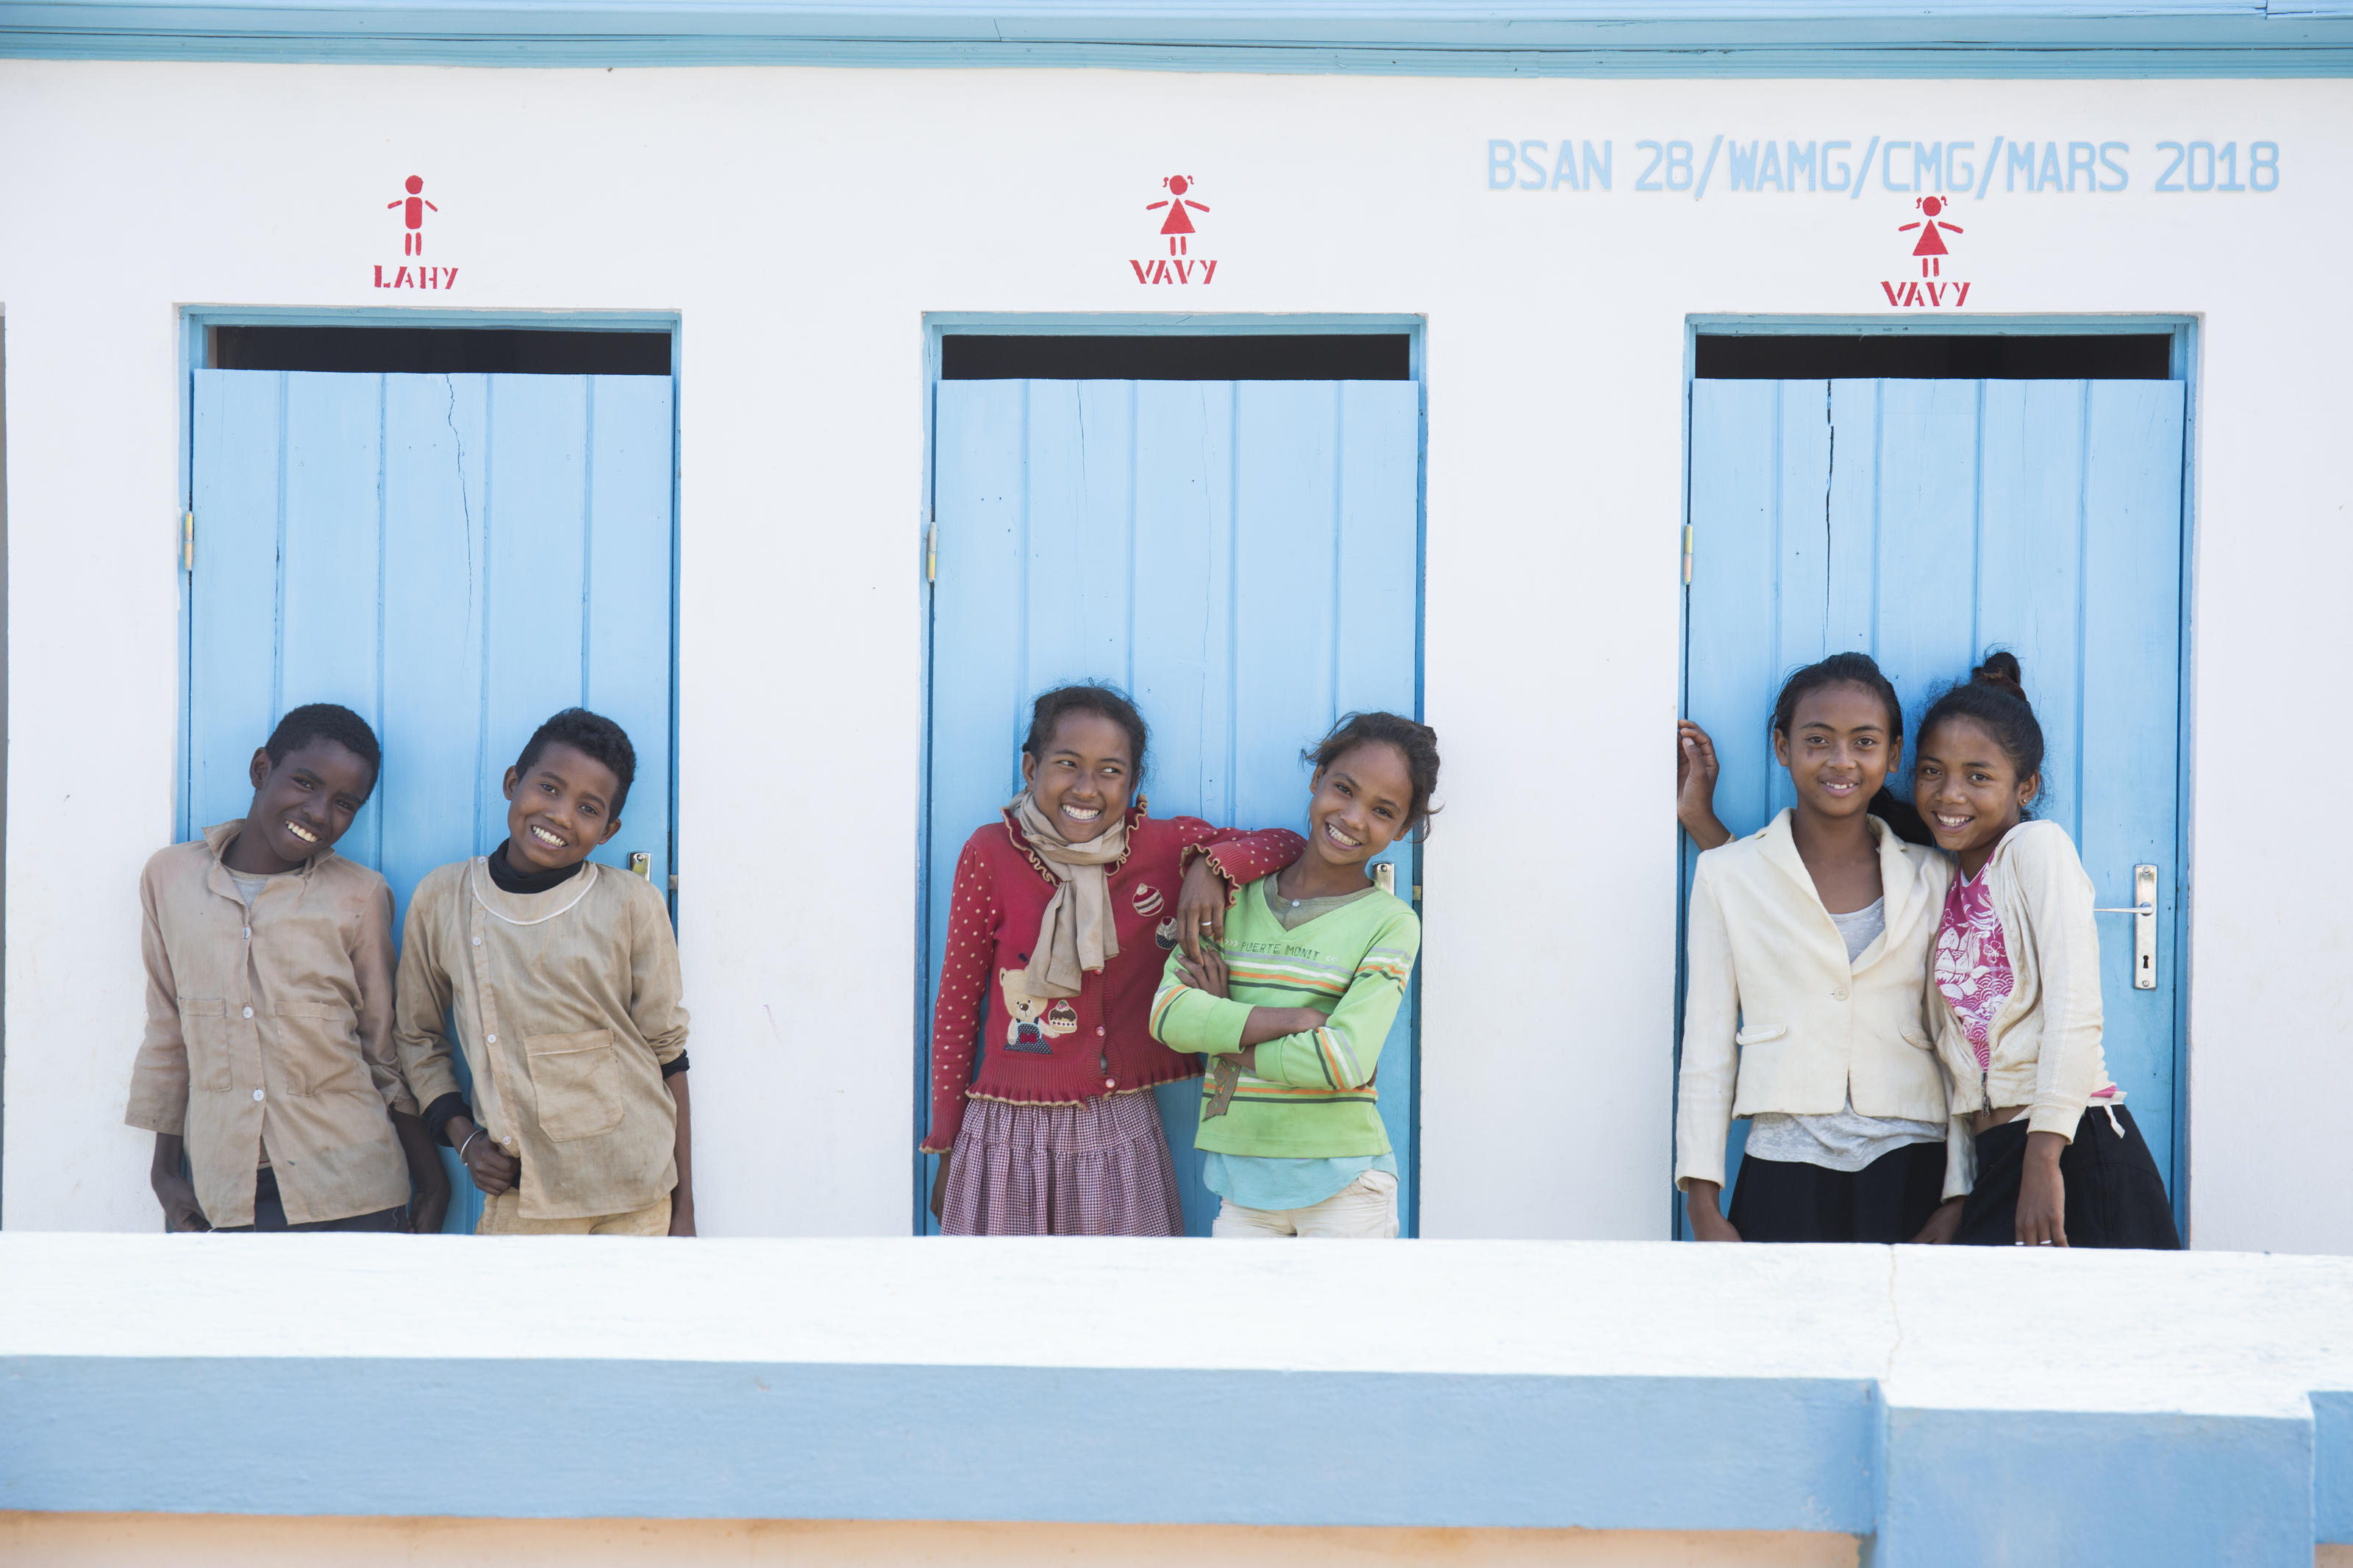 From left to right, Fetra, 12, Tongasoa, 13, Hasina, 12, (red top) Hanitrasoa, 11, (green top), Andrea, 12, and Sarah, 13, posing in front of their separated toilet block. Primary school of Firaisantsoa Imanga village, Tsinjoarivo Imanga commune, Tsir ...